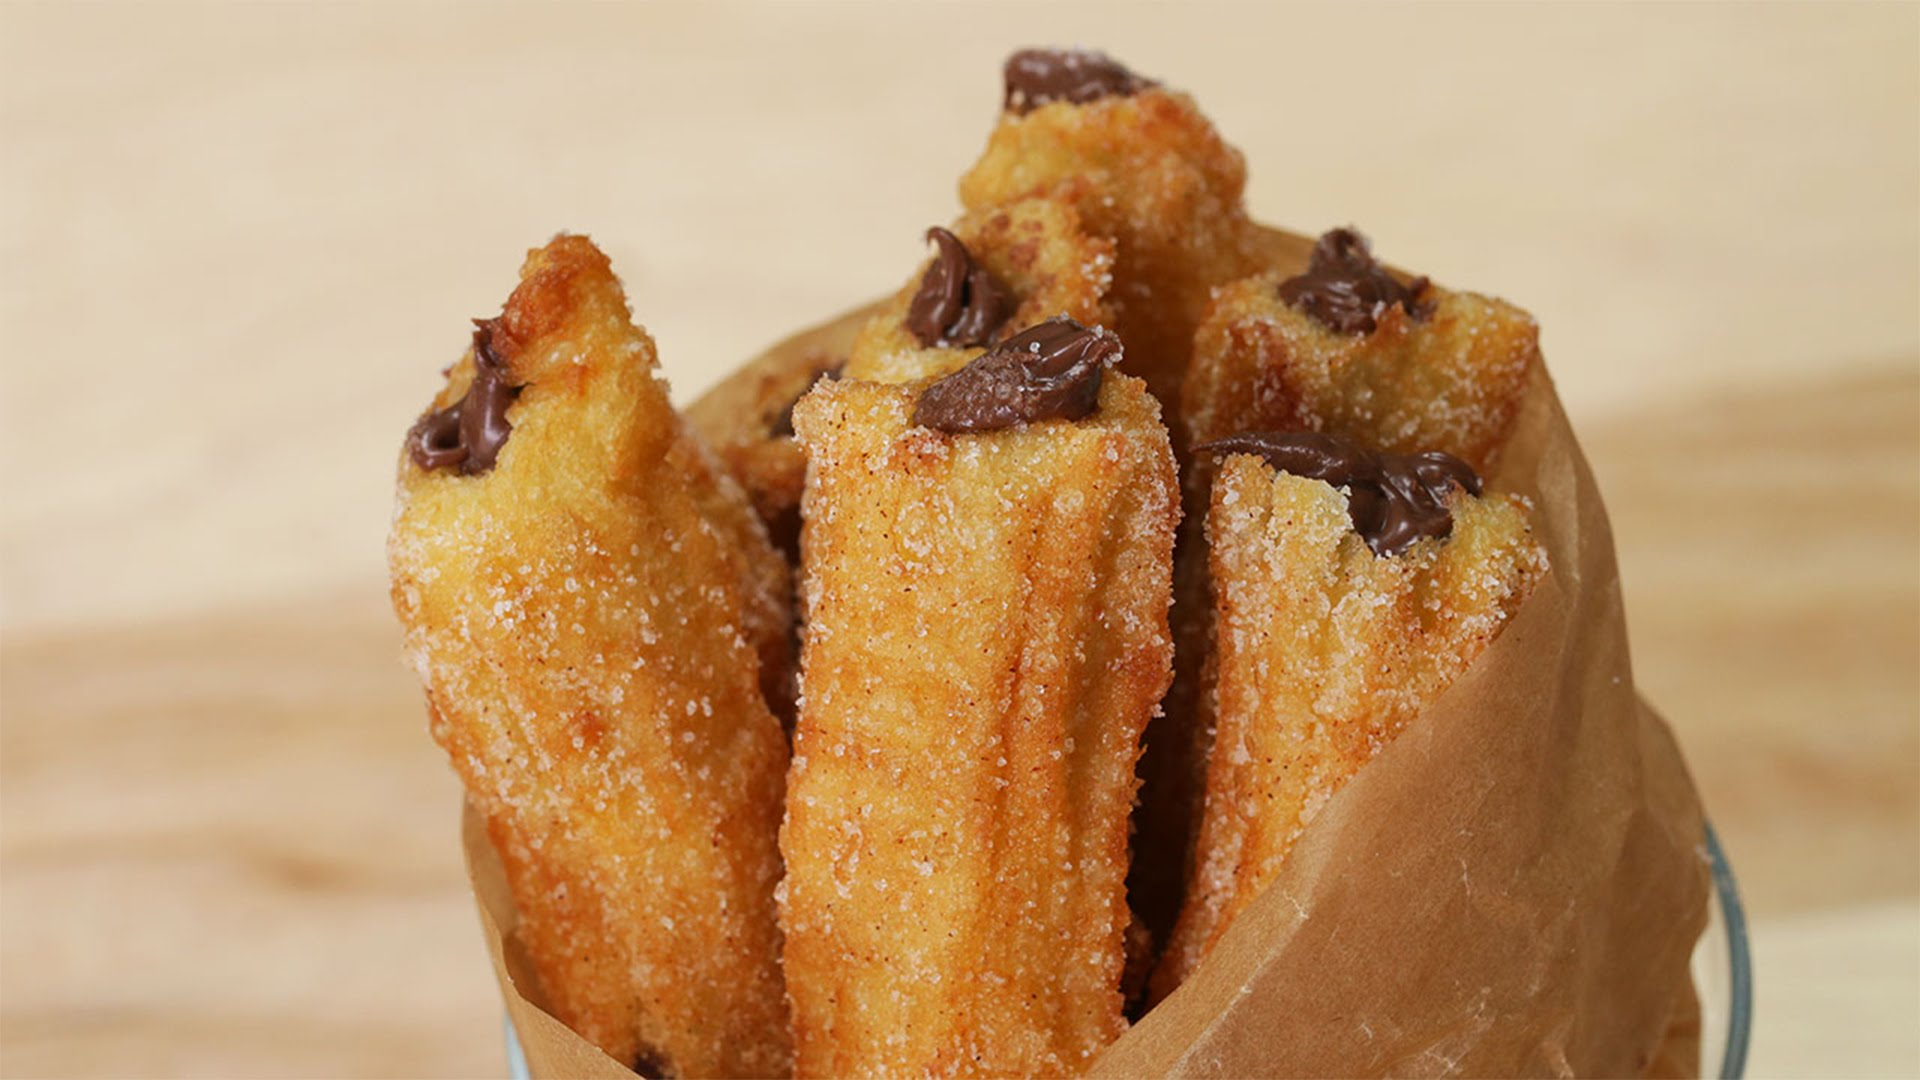 The Easiest Way To Make Chocolate Hazelnut Churros